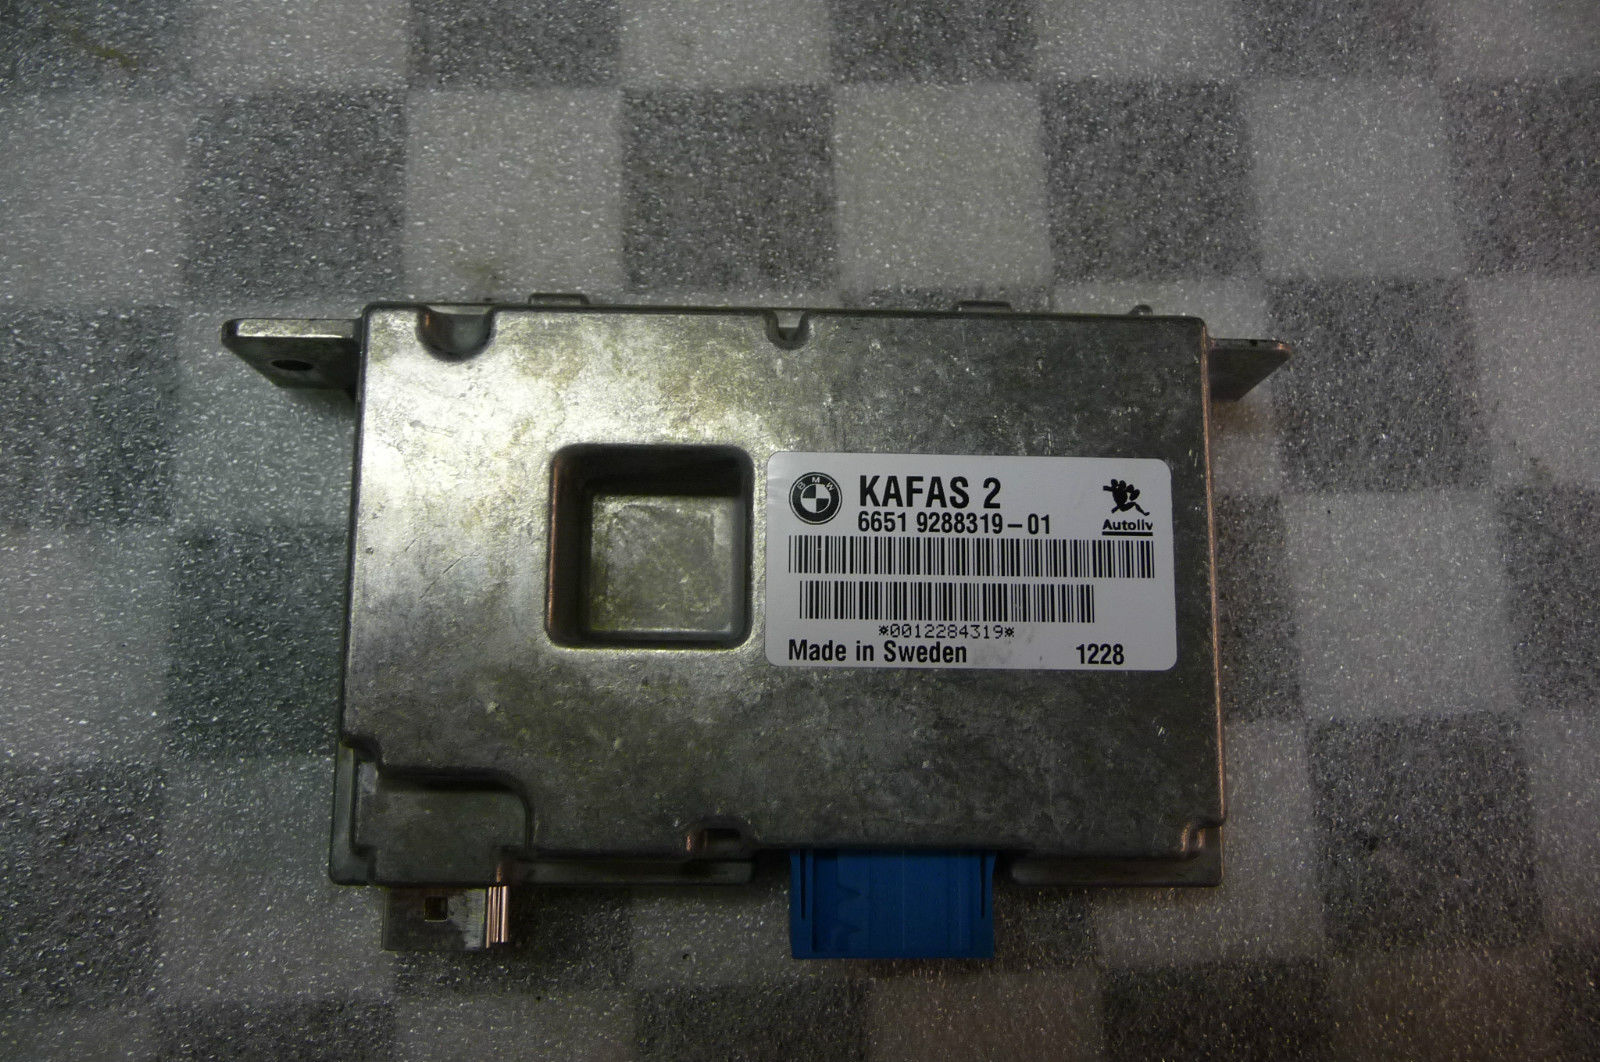 2013 BMW F07 535i GT Camera Based System Control Unit KAFAS2 66519288319 OEM